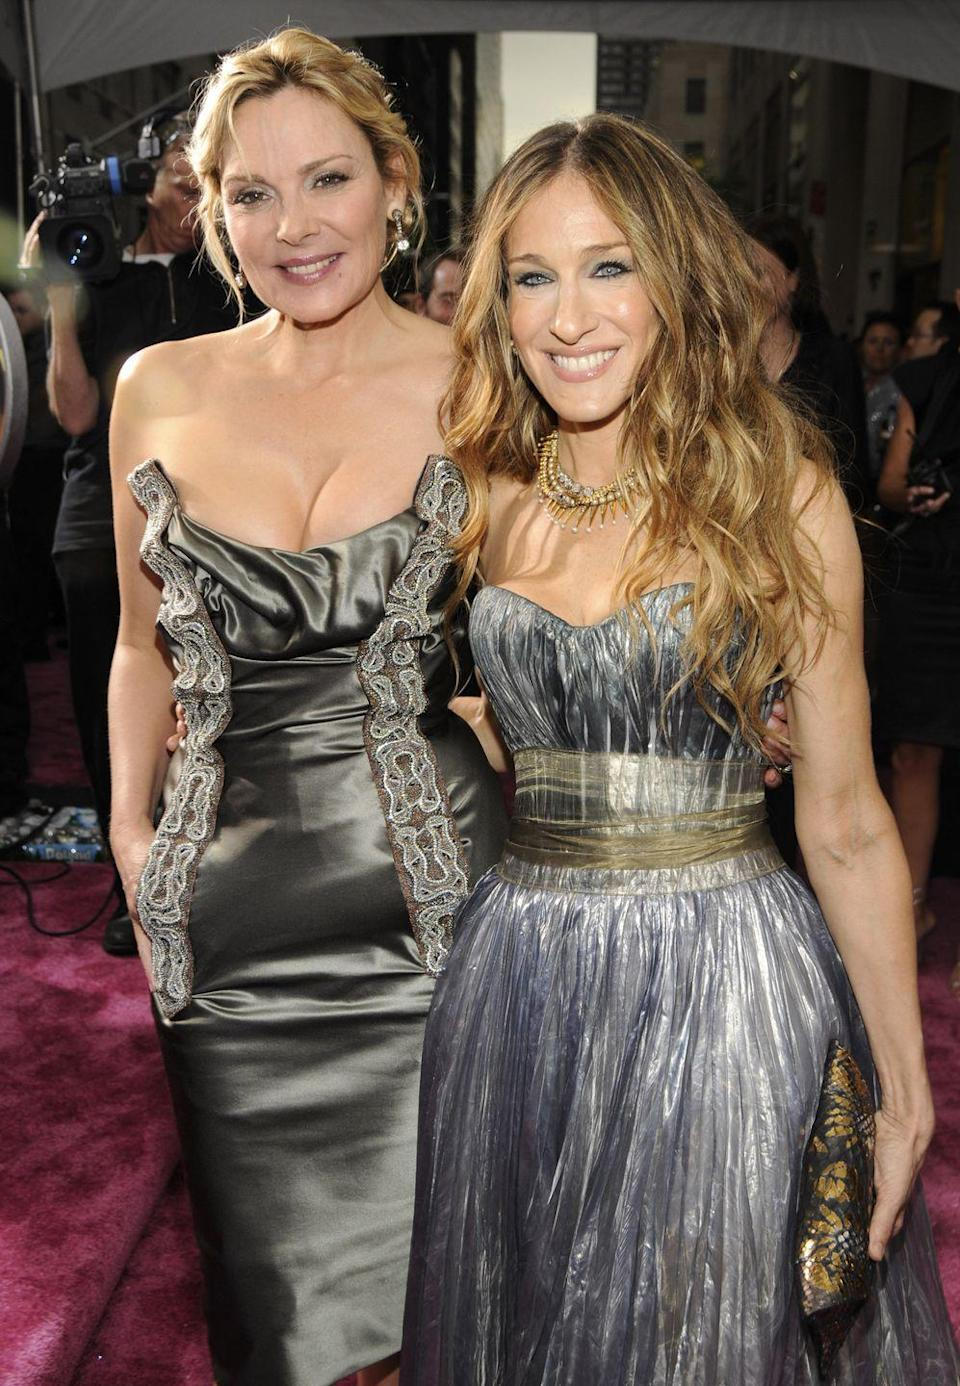 """<p><a href=""""https://www.usmagazine.com/celebrity-news/news/inside-kim-cattrall-and-sarah-jessica-parkers-feud/"""" rel=""""nofollow noopener"""" target=""""_blank"""" data-ylk=""""slk:US Weekly reported"""" class=""""link rapid-noclick-resp""""><em>US Weekly</em> reported</a> that a source close to Parker said, """"Not sure why Kim had to take it to this level."""" Another source told <em>US Weekly</em> that the two """"hated each other"""" and were """"at odds"""" since the beginning of the show's second season.</p><p>A friend of Cattrall's <a href=""""https://www.usmagazine.com/celebrity-news/news/inside-kim-cattrall-and-sarah-jessica-parkers-feud/"""" rel=""""nofollow noopener"""" target=""""_blank"""" data-ylk=""""slk:told US Weekly"""" class=""""link rapid-noclick-resp"""">told <em>US Weekly</em></a>, """"Their costars can't understand why Kim lashed out. It wasn't this bad during filming,"""" while a friend of Parker's said, """"There's no love there, but Sarah Jessica was just being polite. It's sad.""""</p>"""